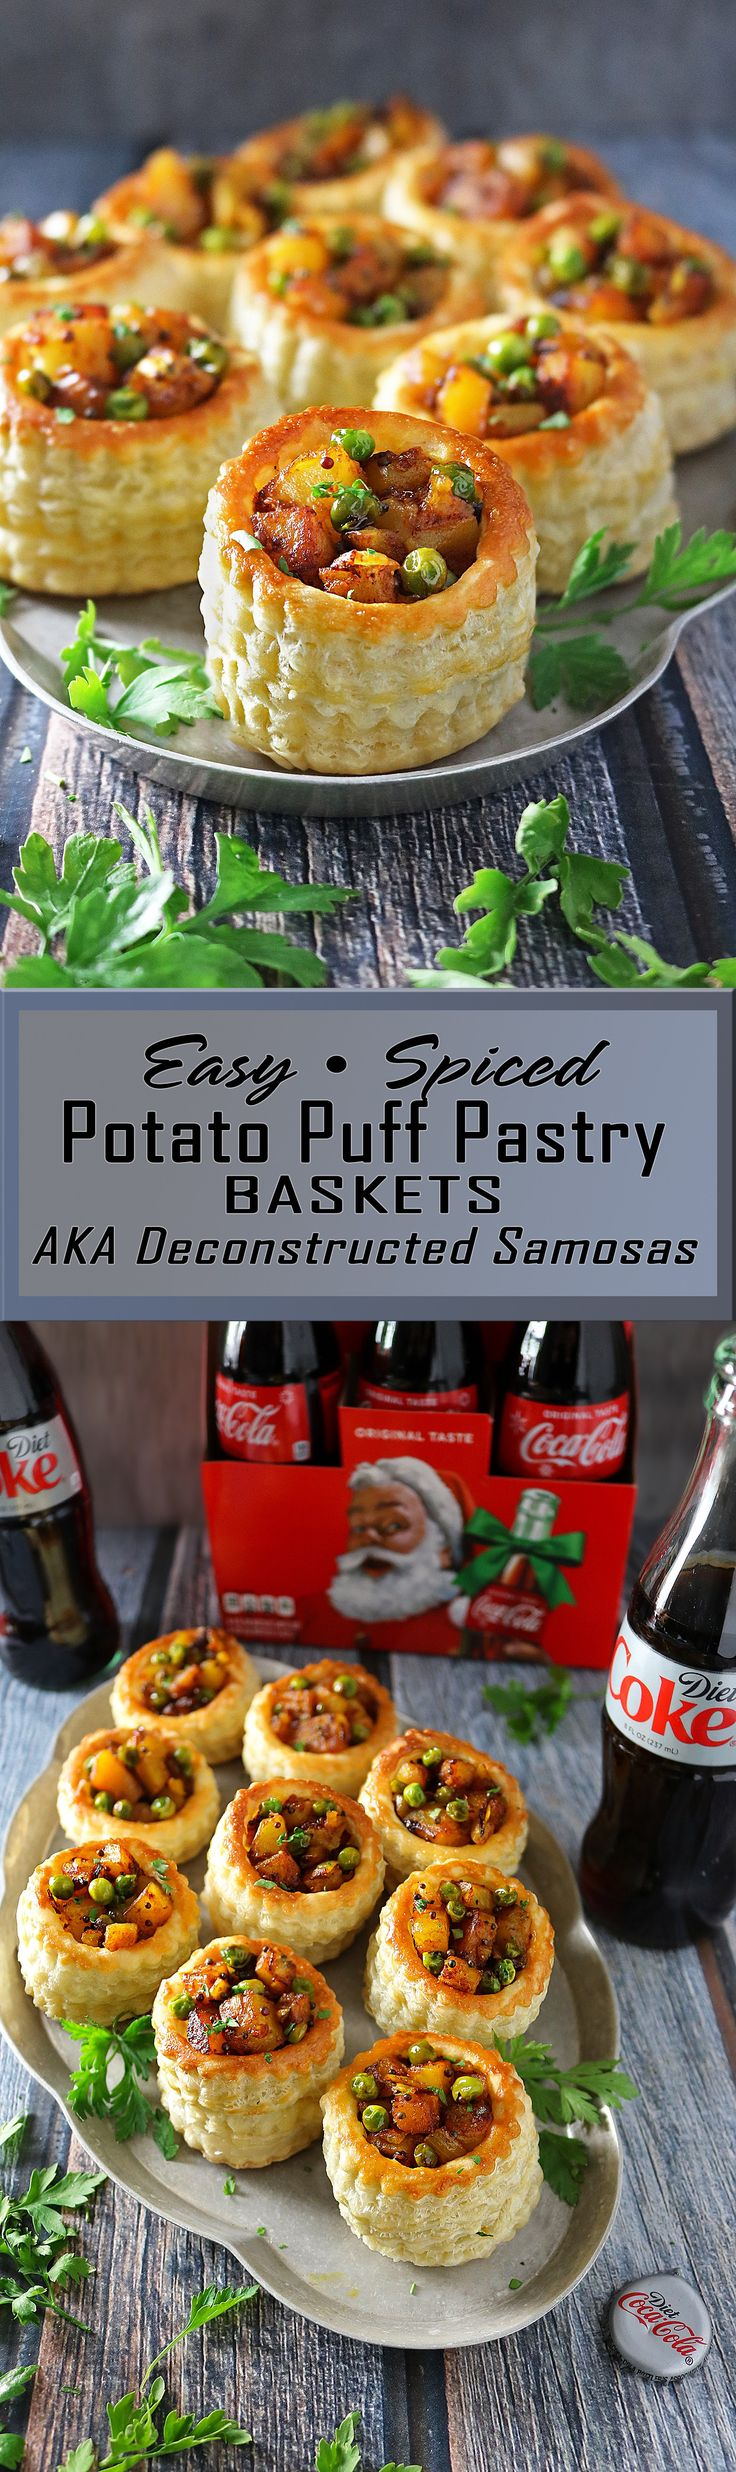 Easy Spiced Potato Puff Pastry Baskets - If you feel challenged when it comes to samosa folding like I do, then why not try making these Spiced Potato Puff Pastry Baskets or deconstructed samosas? #ad #ServeWithACoke